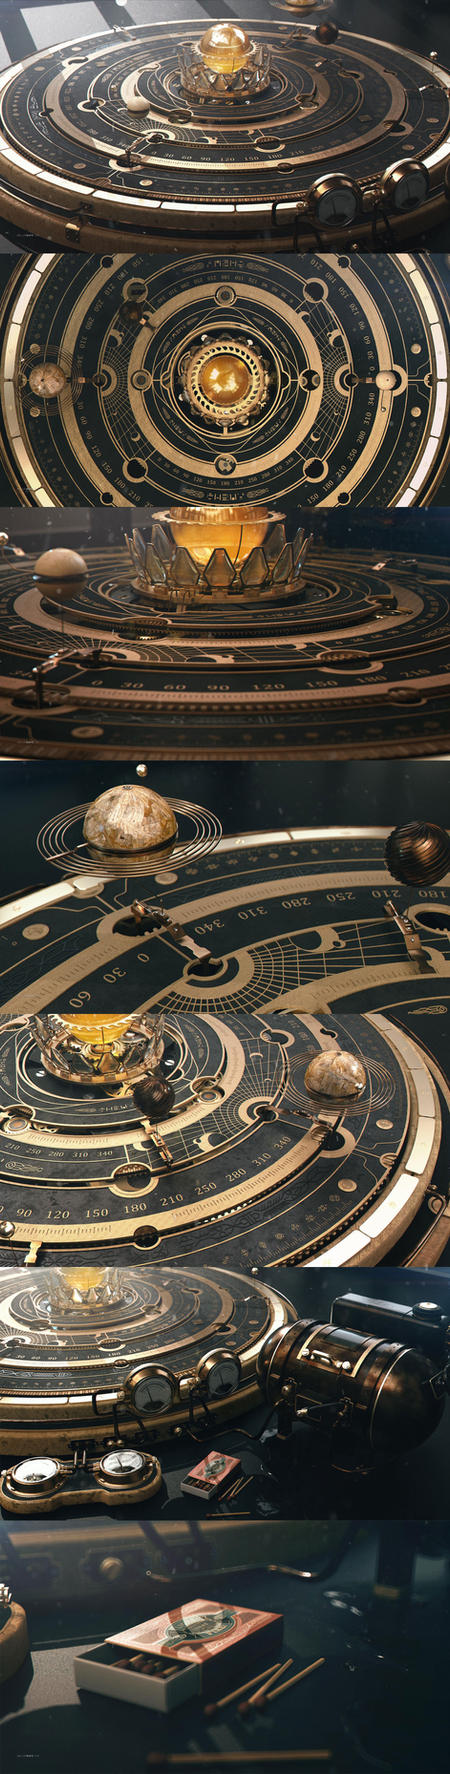 Steampunk Astrolabe Orrery Table by dchan